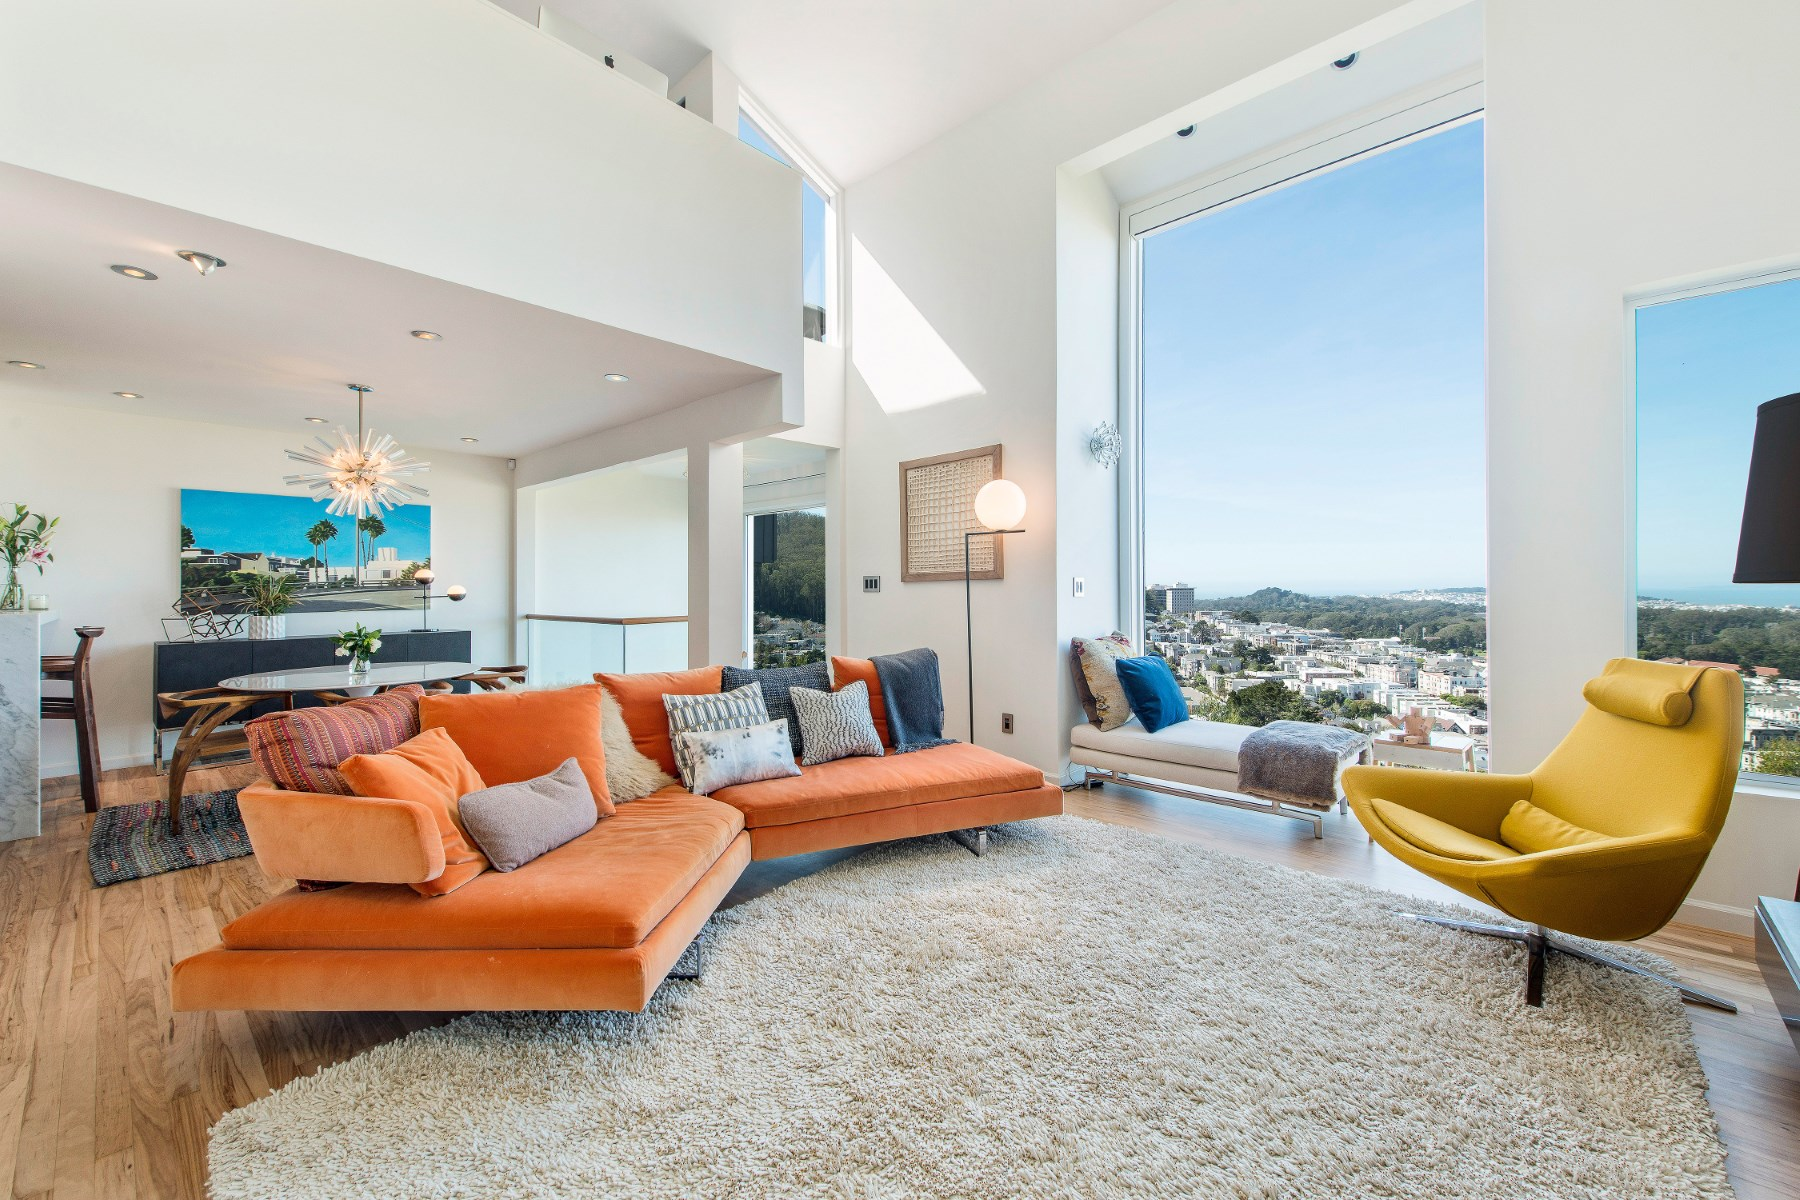 Single Family Home for Sale at Exquisite Modern Home in Ashbury Heights 389 Upper Ter Haight Ashbury, San Francisco, California, 94117 United States